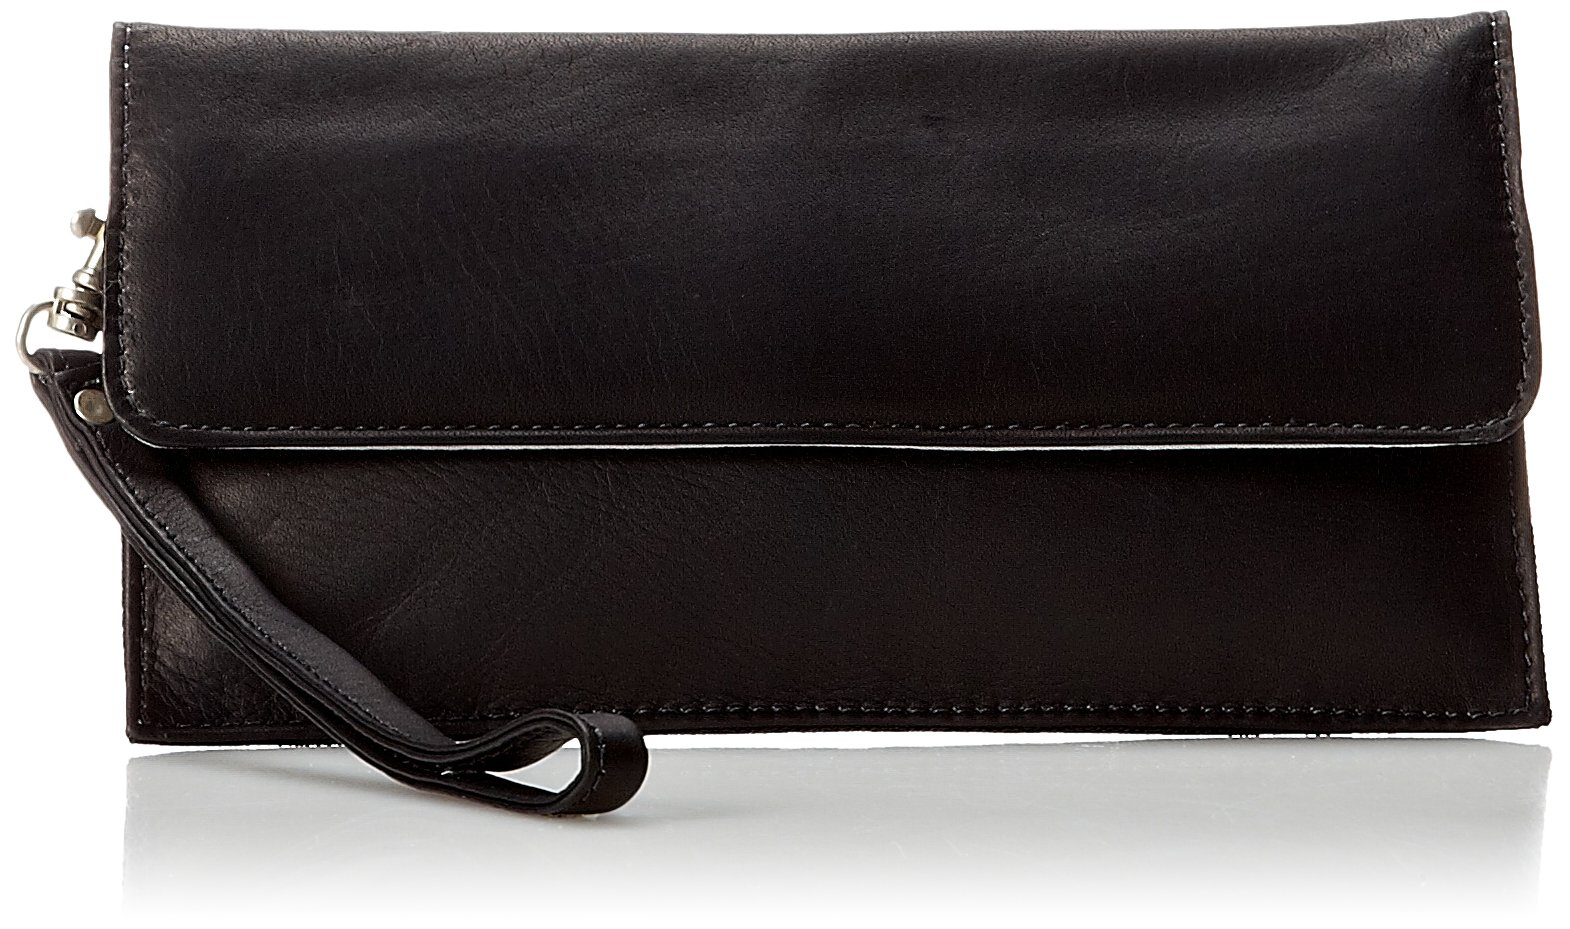 Piel Leather Travel Wallet, Black, One Size by Piel Leather